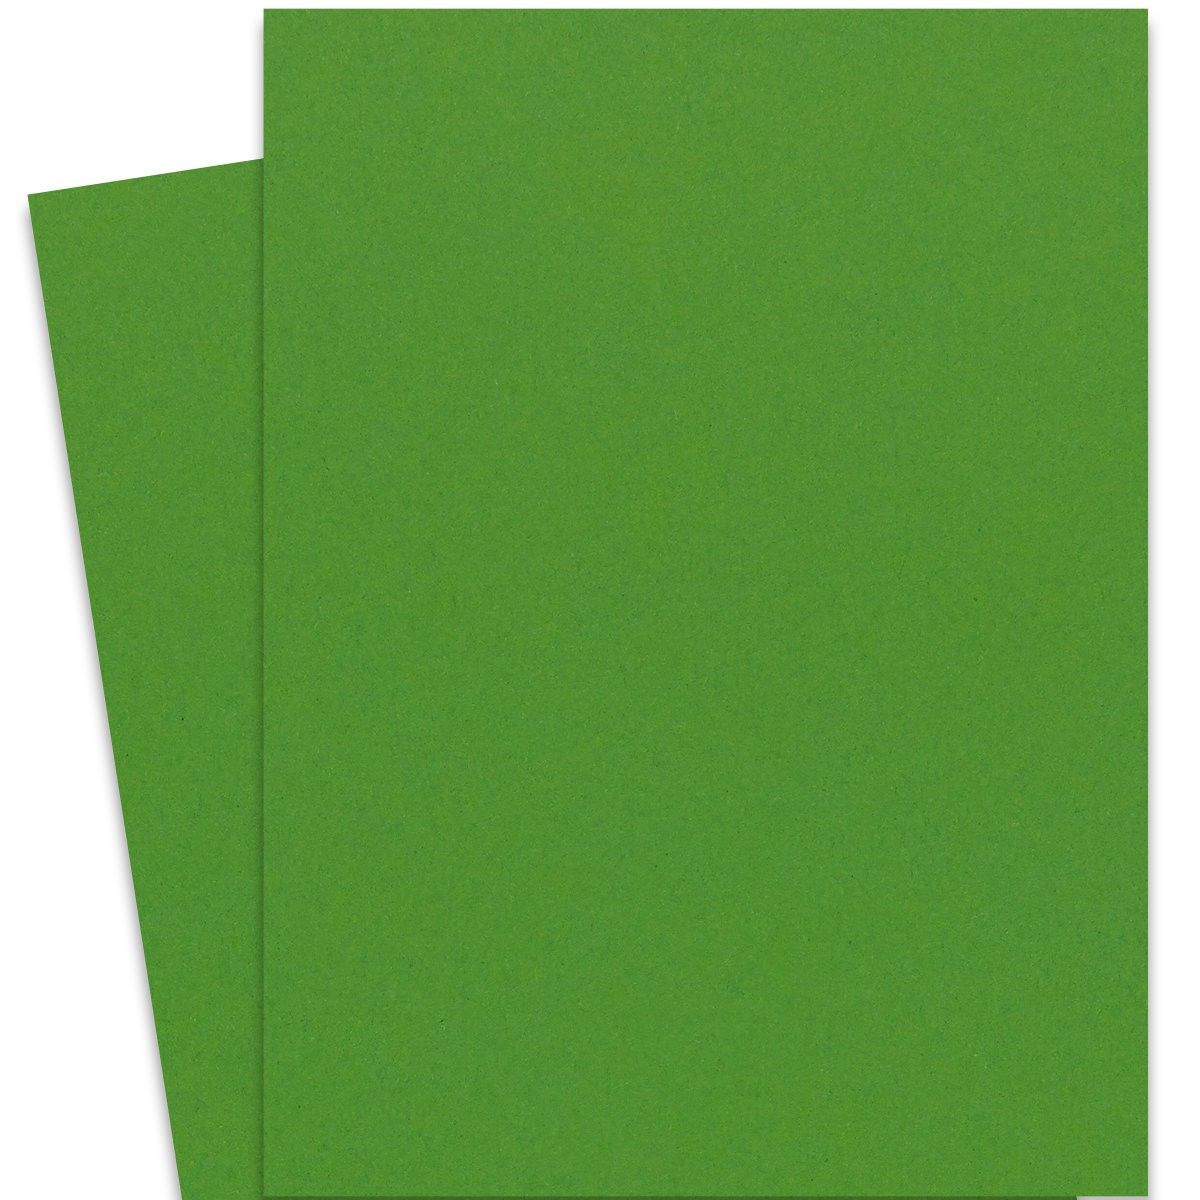 Extract Cactus 28 3 X 40 2 Full Size Cardstock Paper 380 Gsm 140lb Cover 75 Pk Cardstock Paper Card Stock Paper Cactus